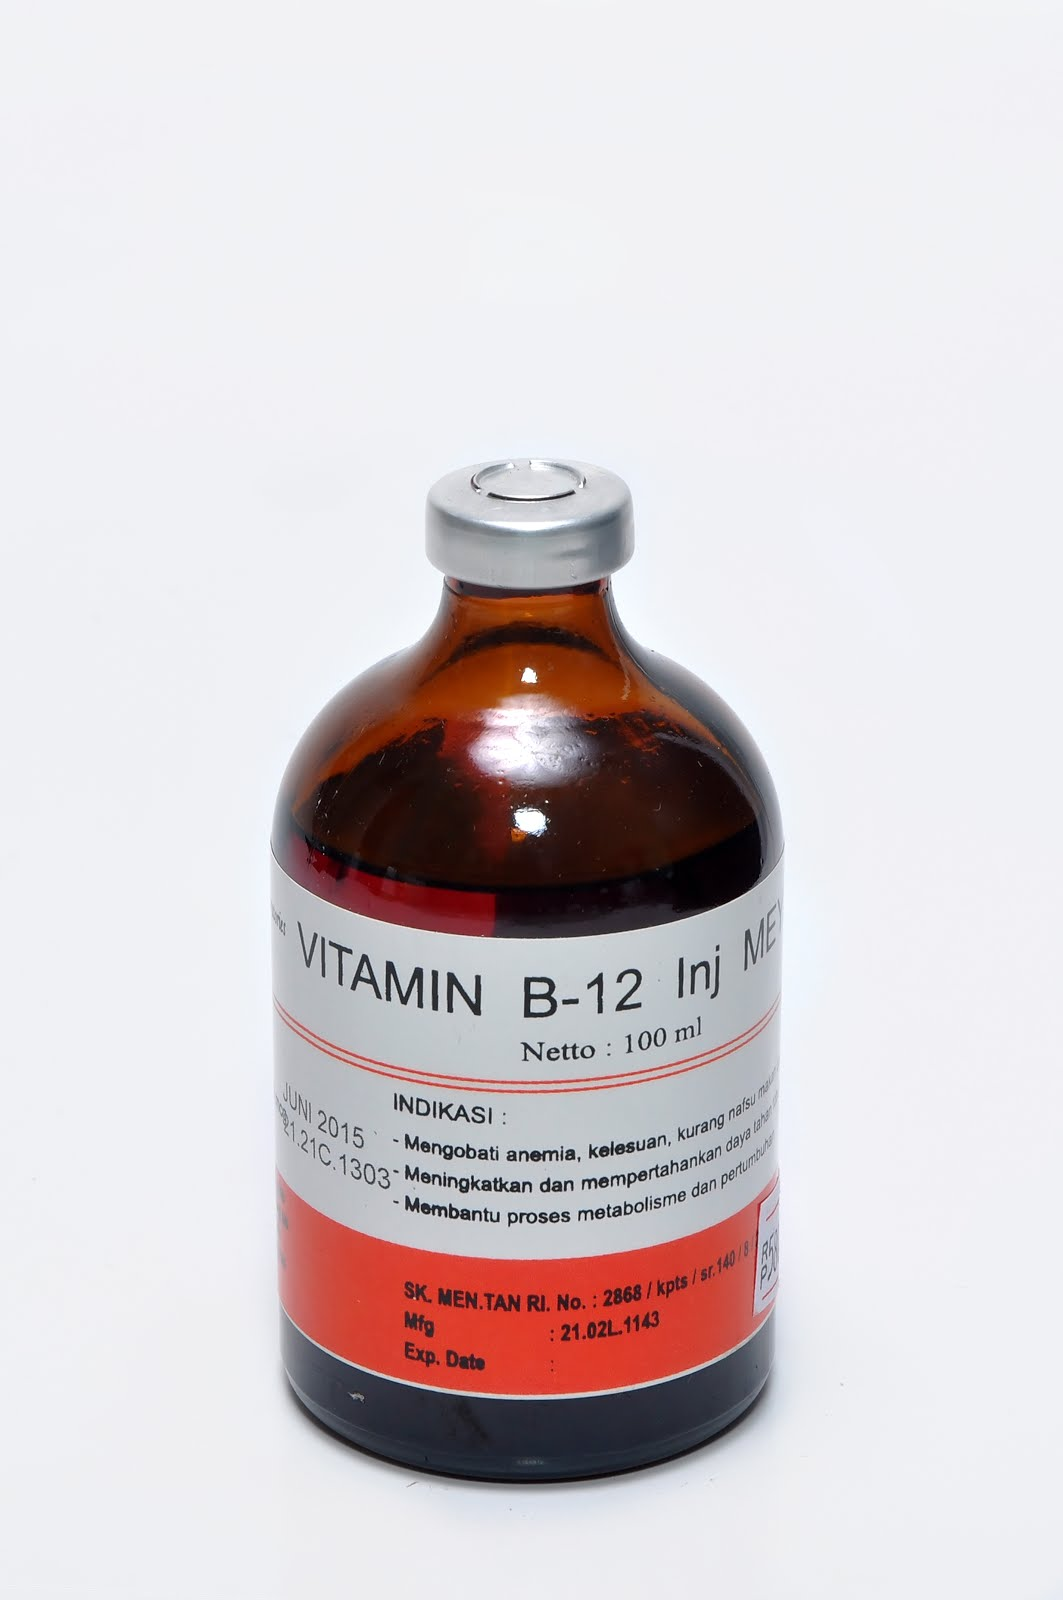 Vitamin B12 Inj. Meyer